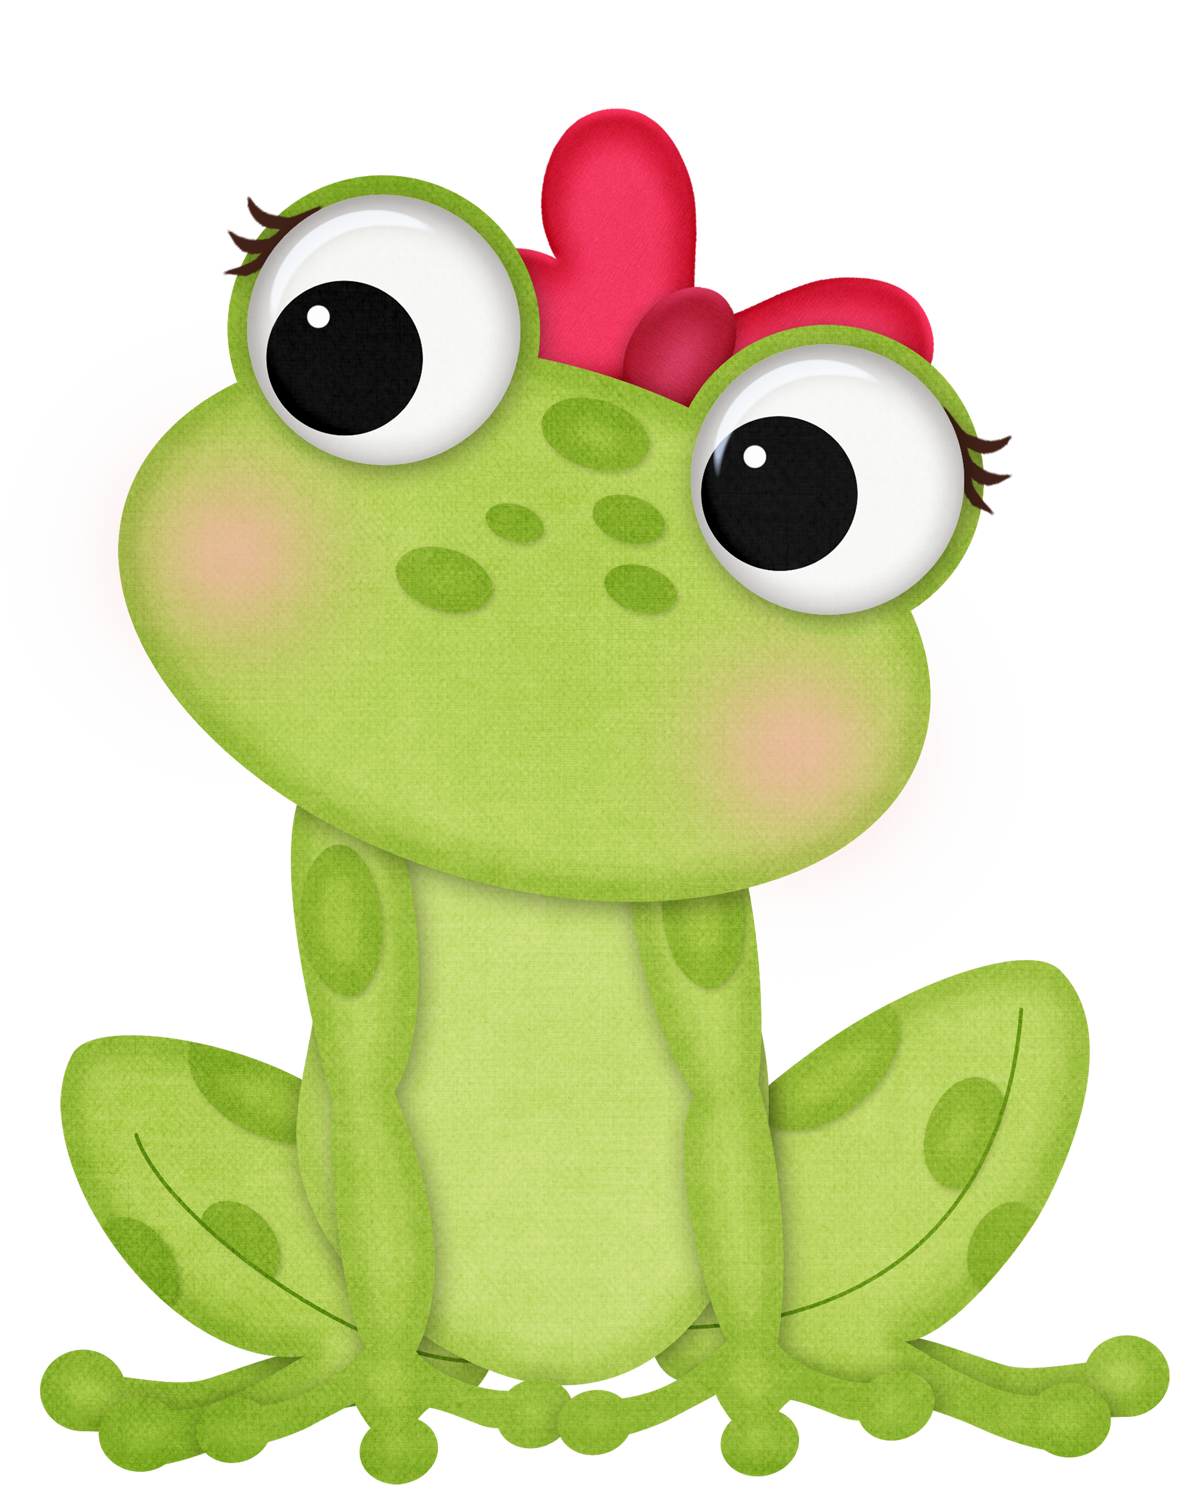 Kiss clipart frog, Kiss frog Transparent FREE for download ...